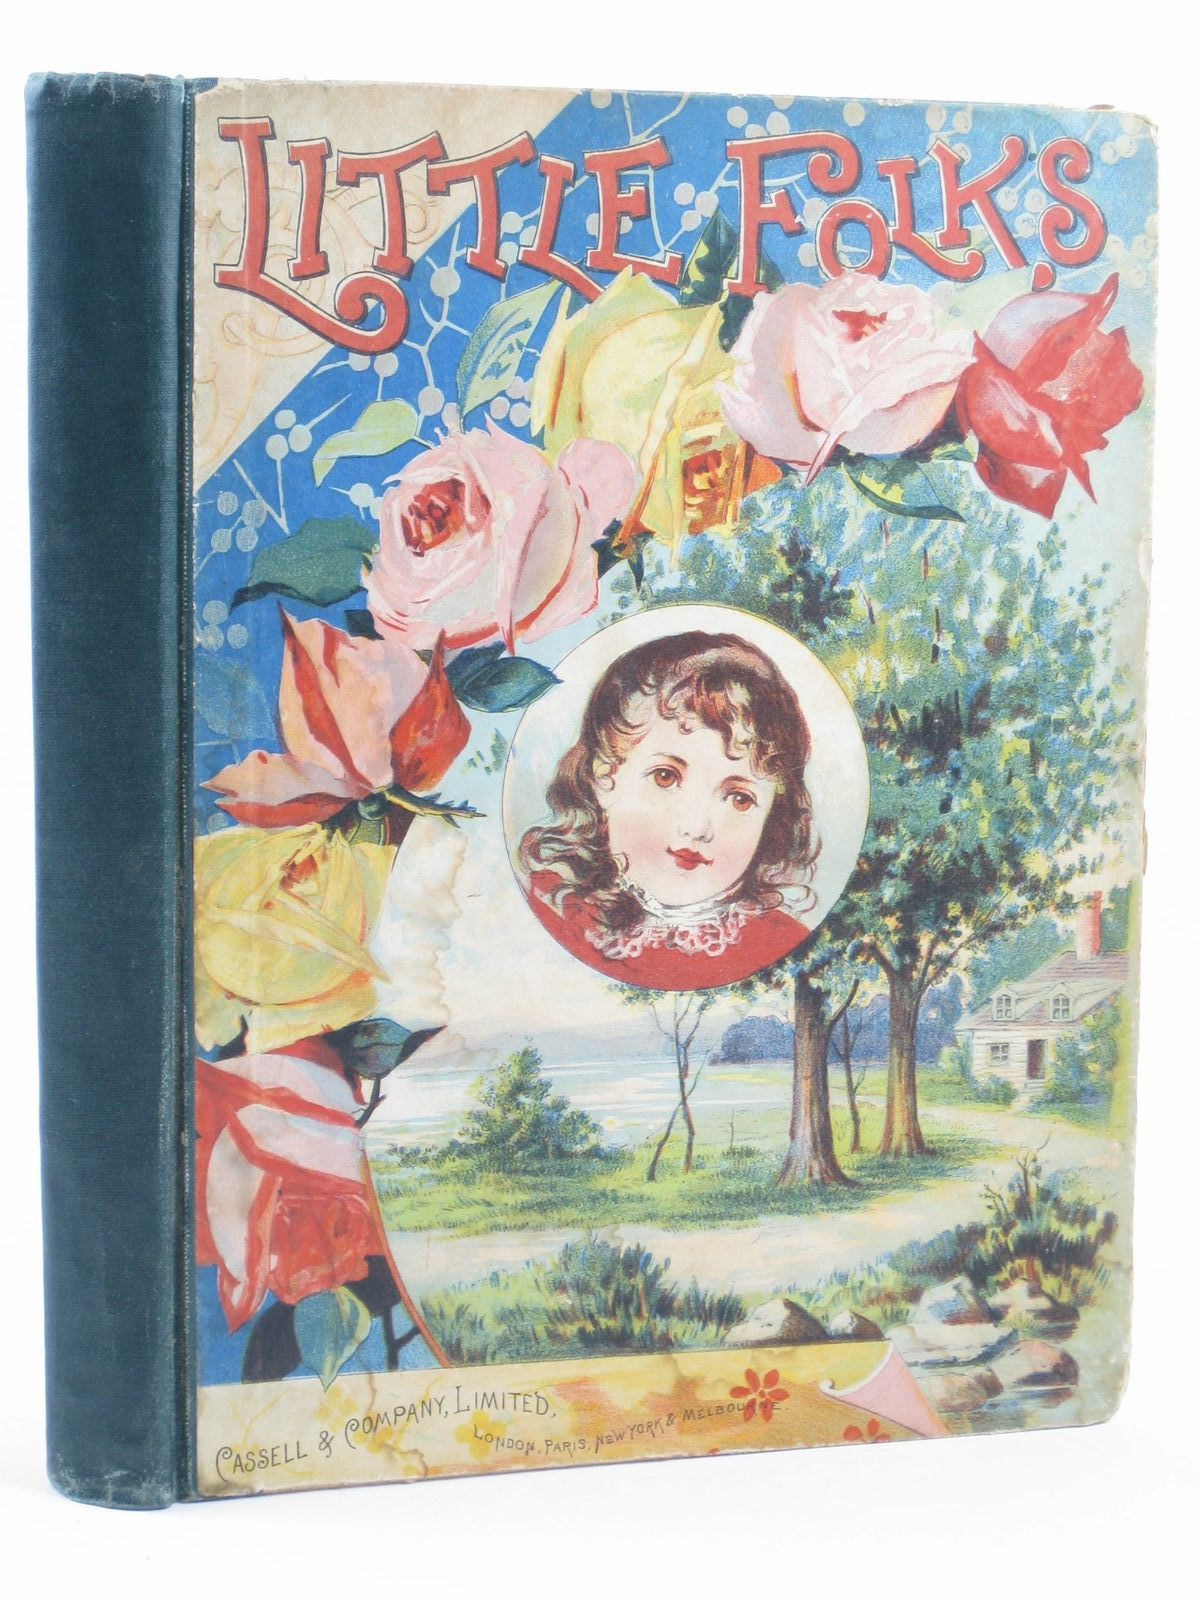 Photo of LITTLE FOLKS VOL 25 illustrated by Wain, Louis et al., published by Cassell & Company Limited (STOCK CODE: 1311173)  for sale by Stella & Rose's Books